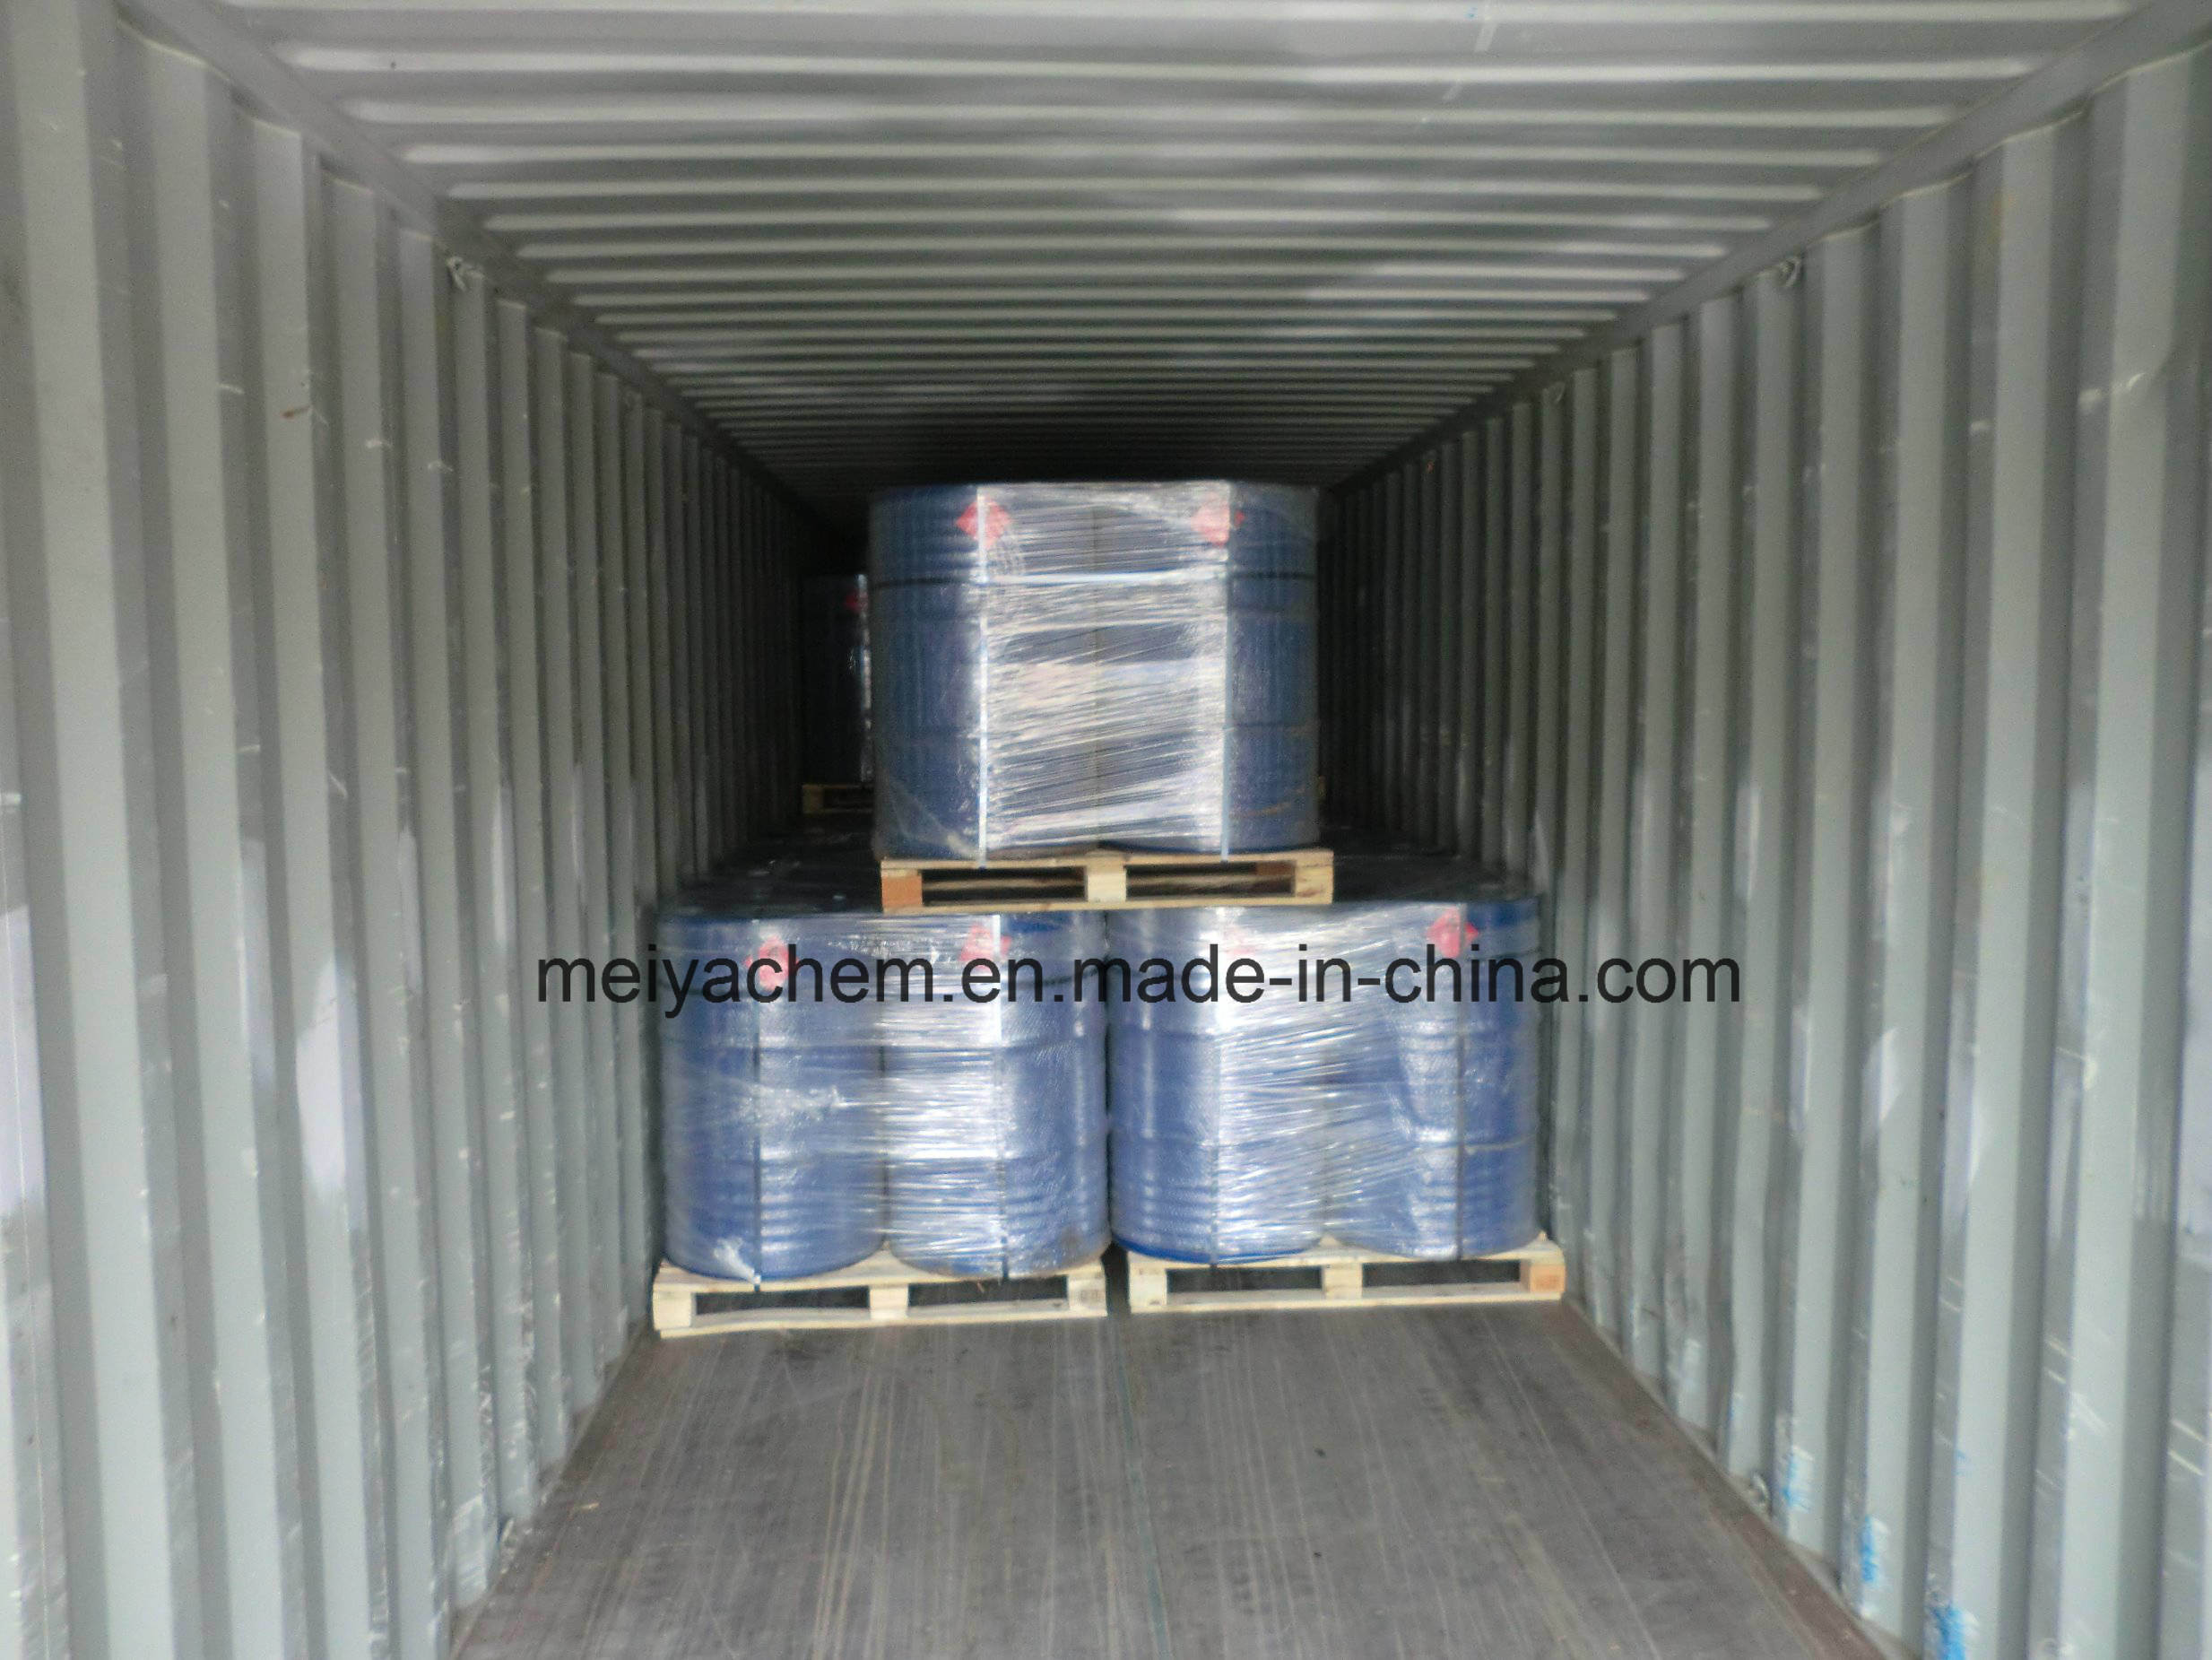 Chemical Solvent Methyl Isobutyl Ketone /Mibk for Nitrocelluloses